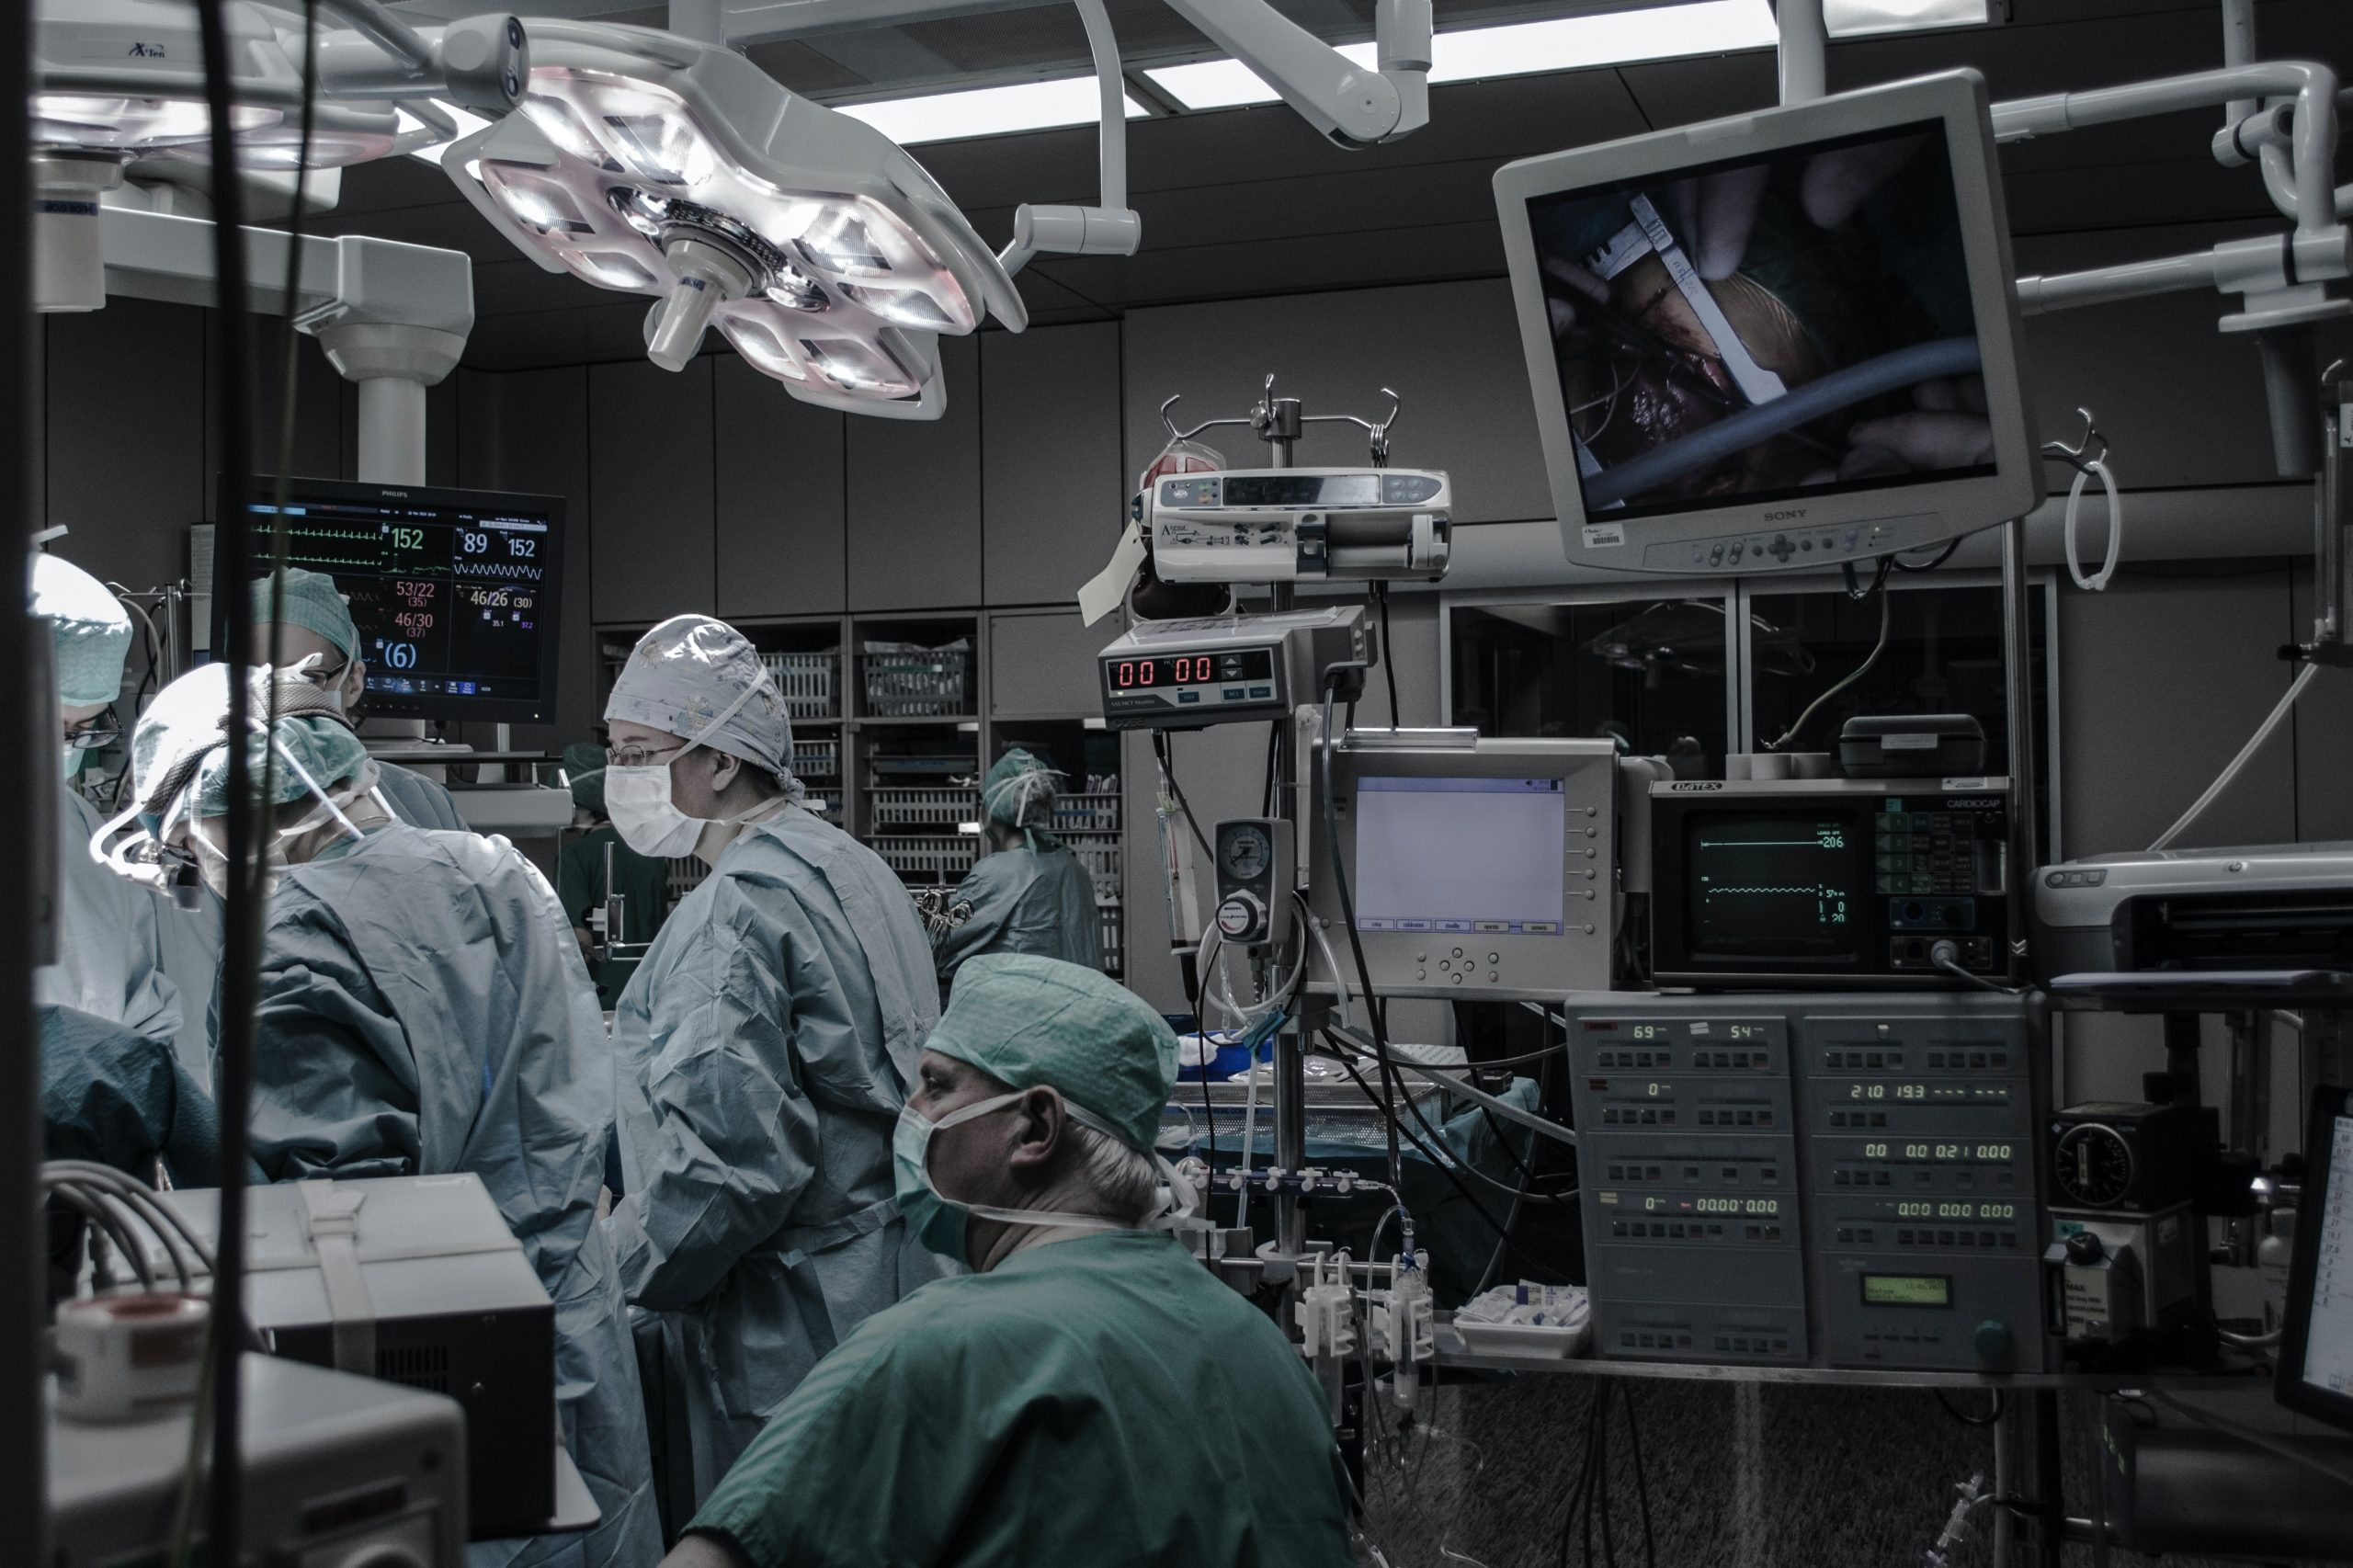 people wearing surgical clothes inside operating room